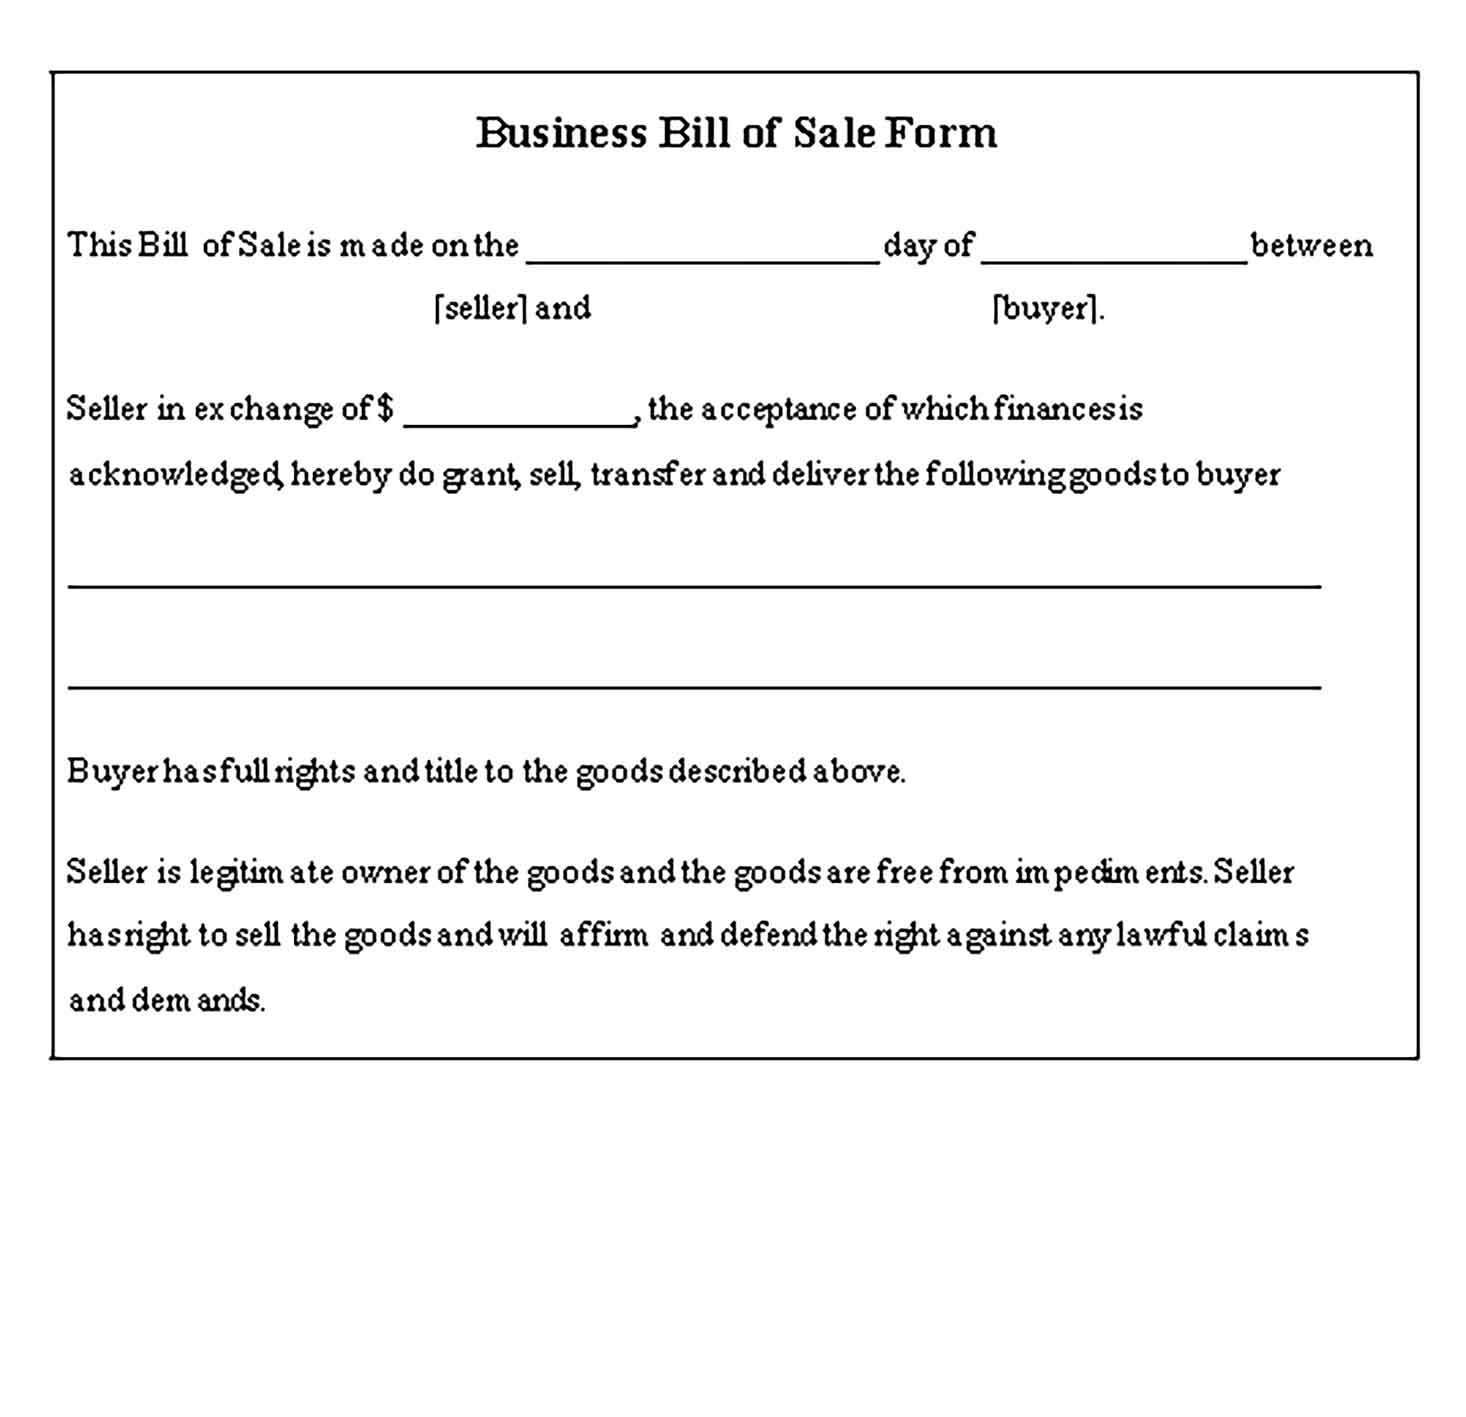 Sample business bill of sale 003 Templates